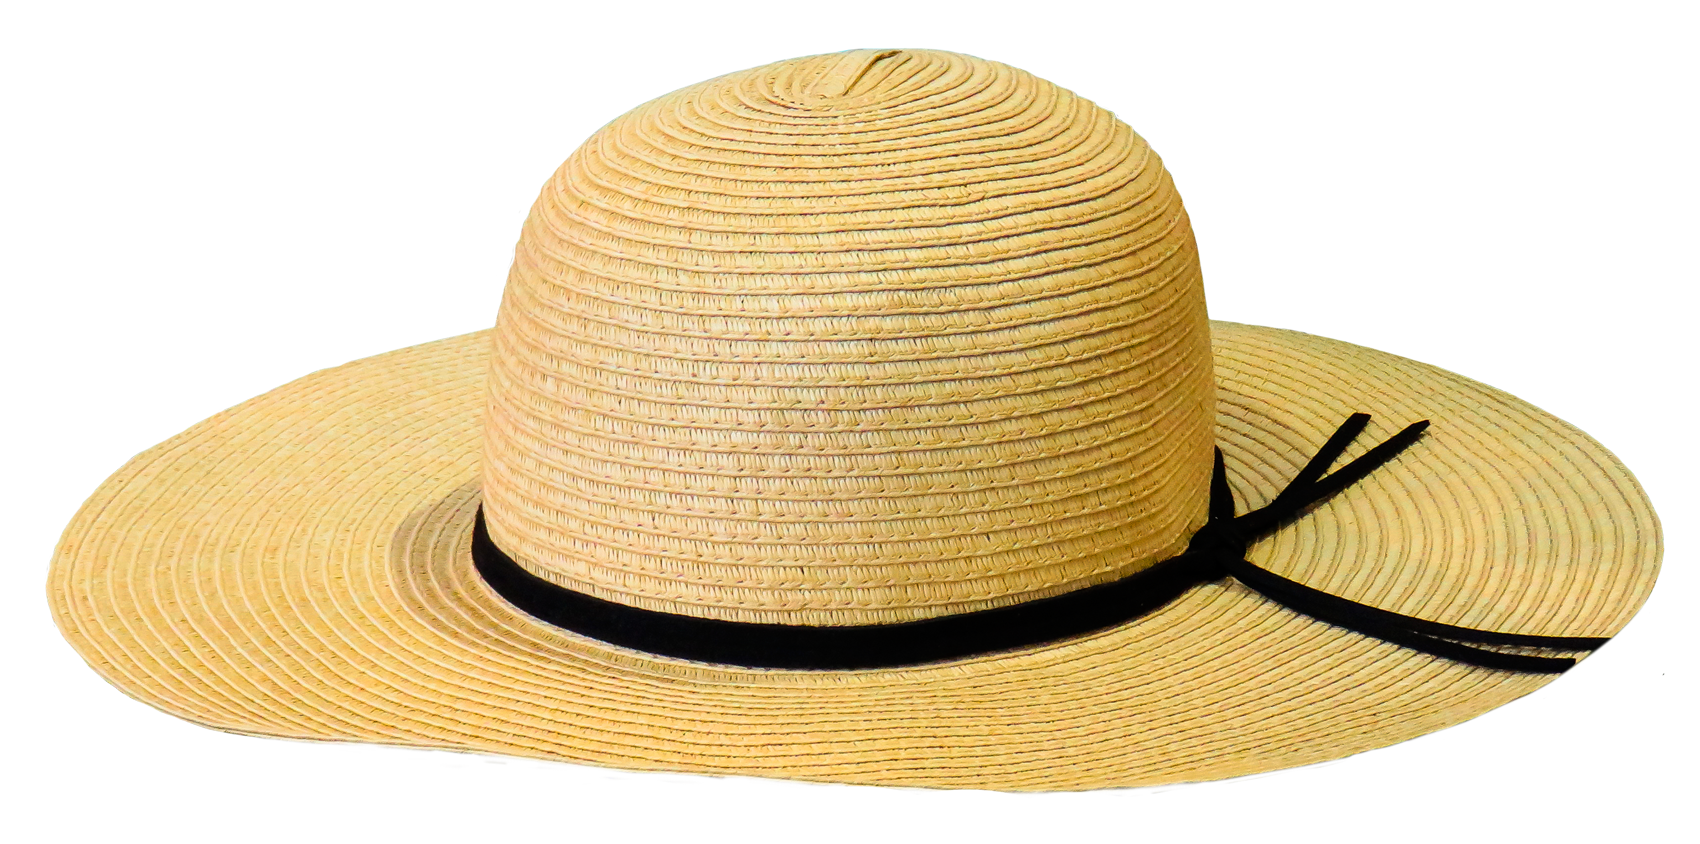 Free clipart sun hat freeuse library Hat PNG Image - PurePNG | Free transparent CC0 PNG Image Library freeuse library